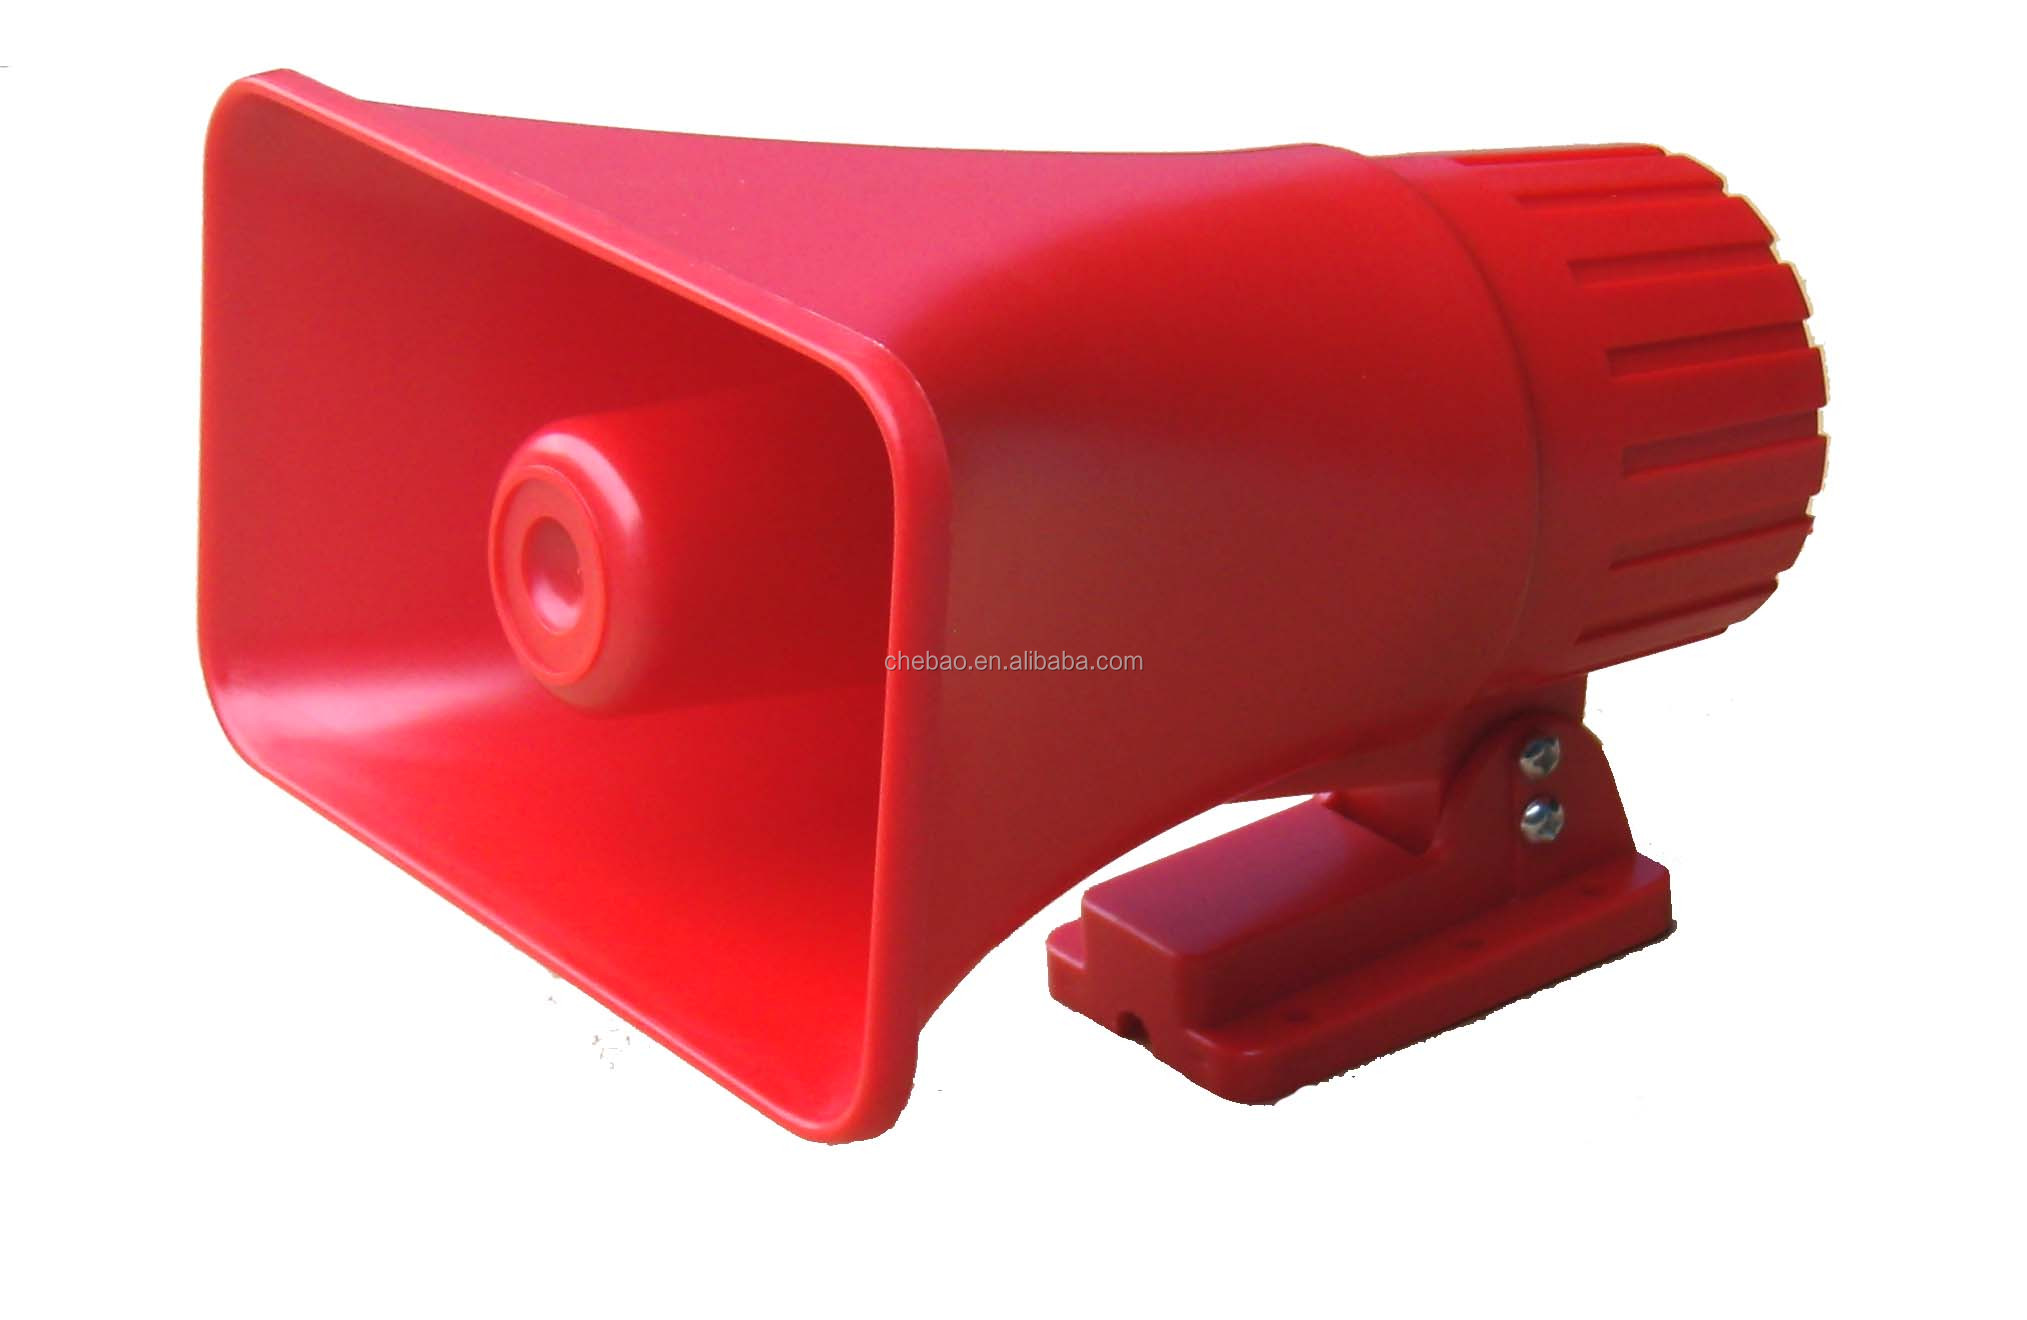 China Police Electronic Sirens Siren Tone Circuit Manufacturers And Suppliers On